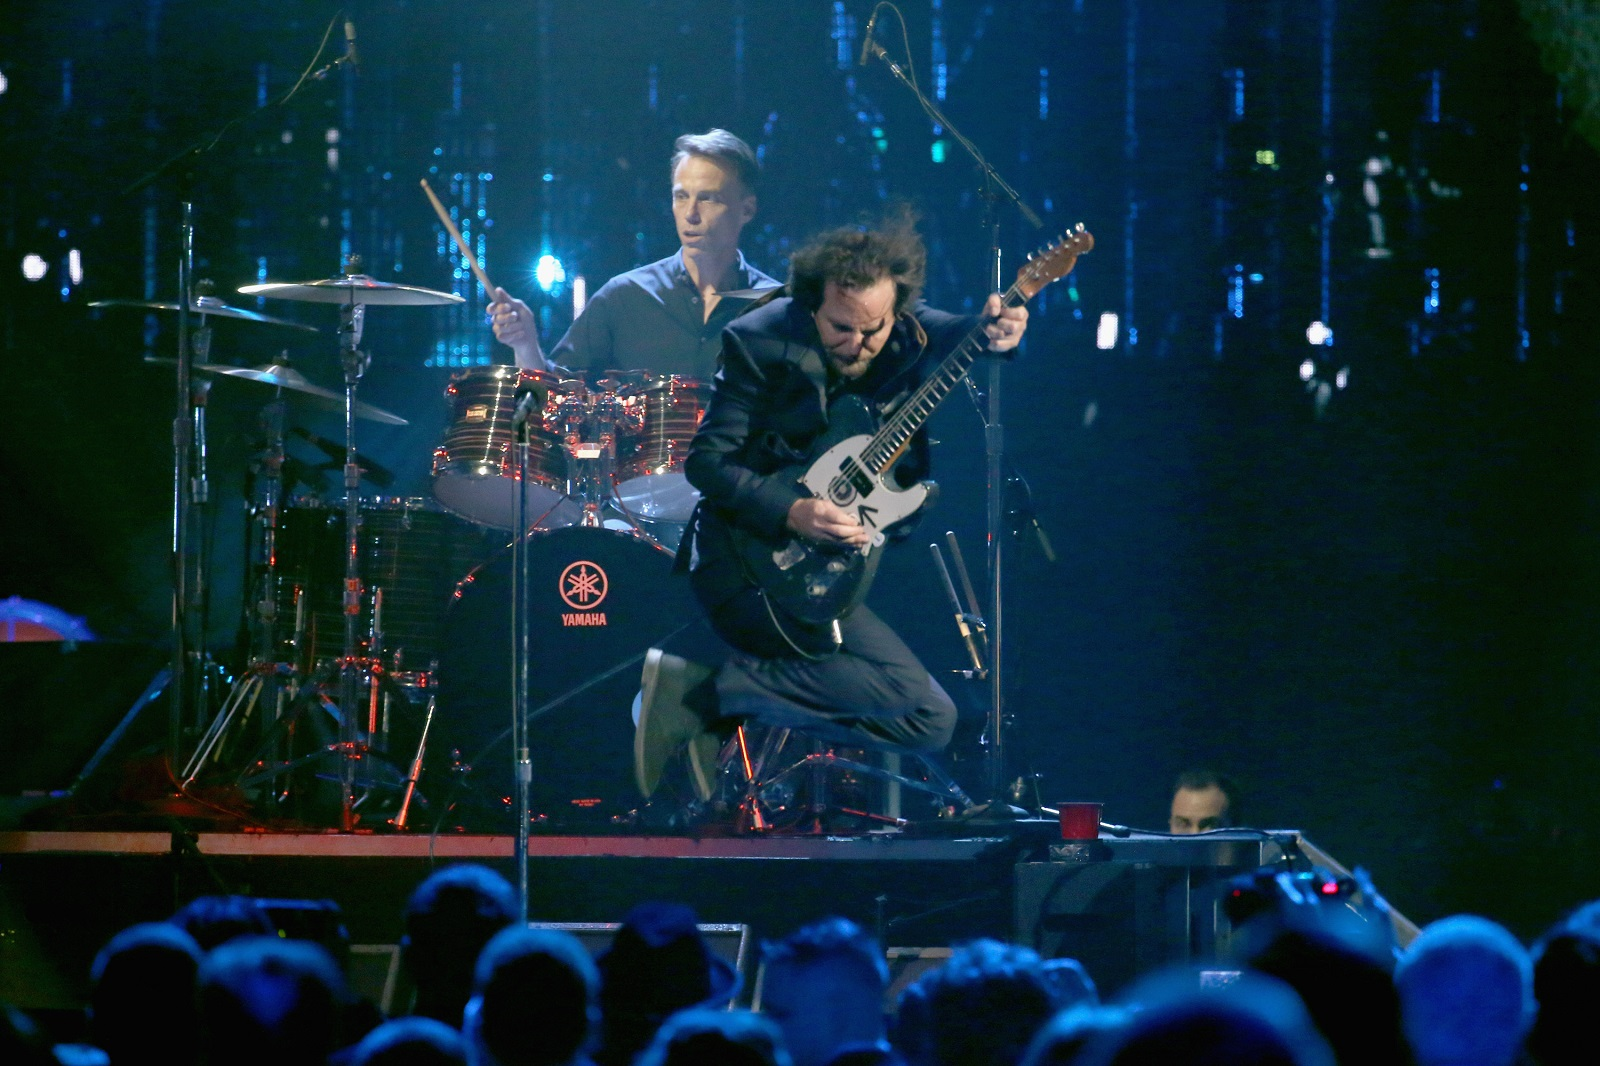 Inductees Eddie Vedder of Pearl Jam and Matt Cameron perform onstage at the 32nd annual Rock & Roll Hall of Fame induction ceremony.  (Photo by Kevin Kane/WireImage for Rock and Roll Hall of Fame)